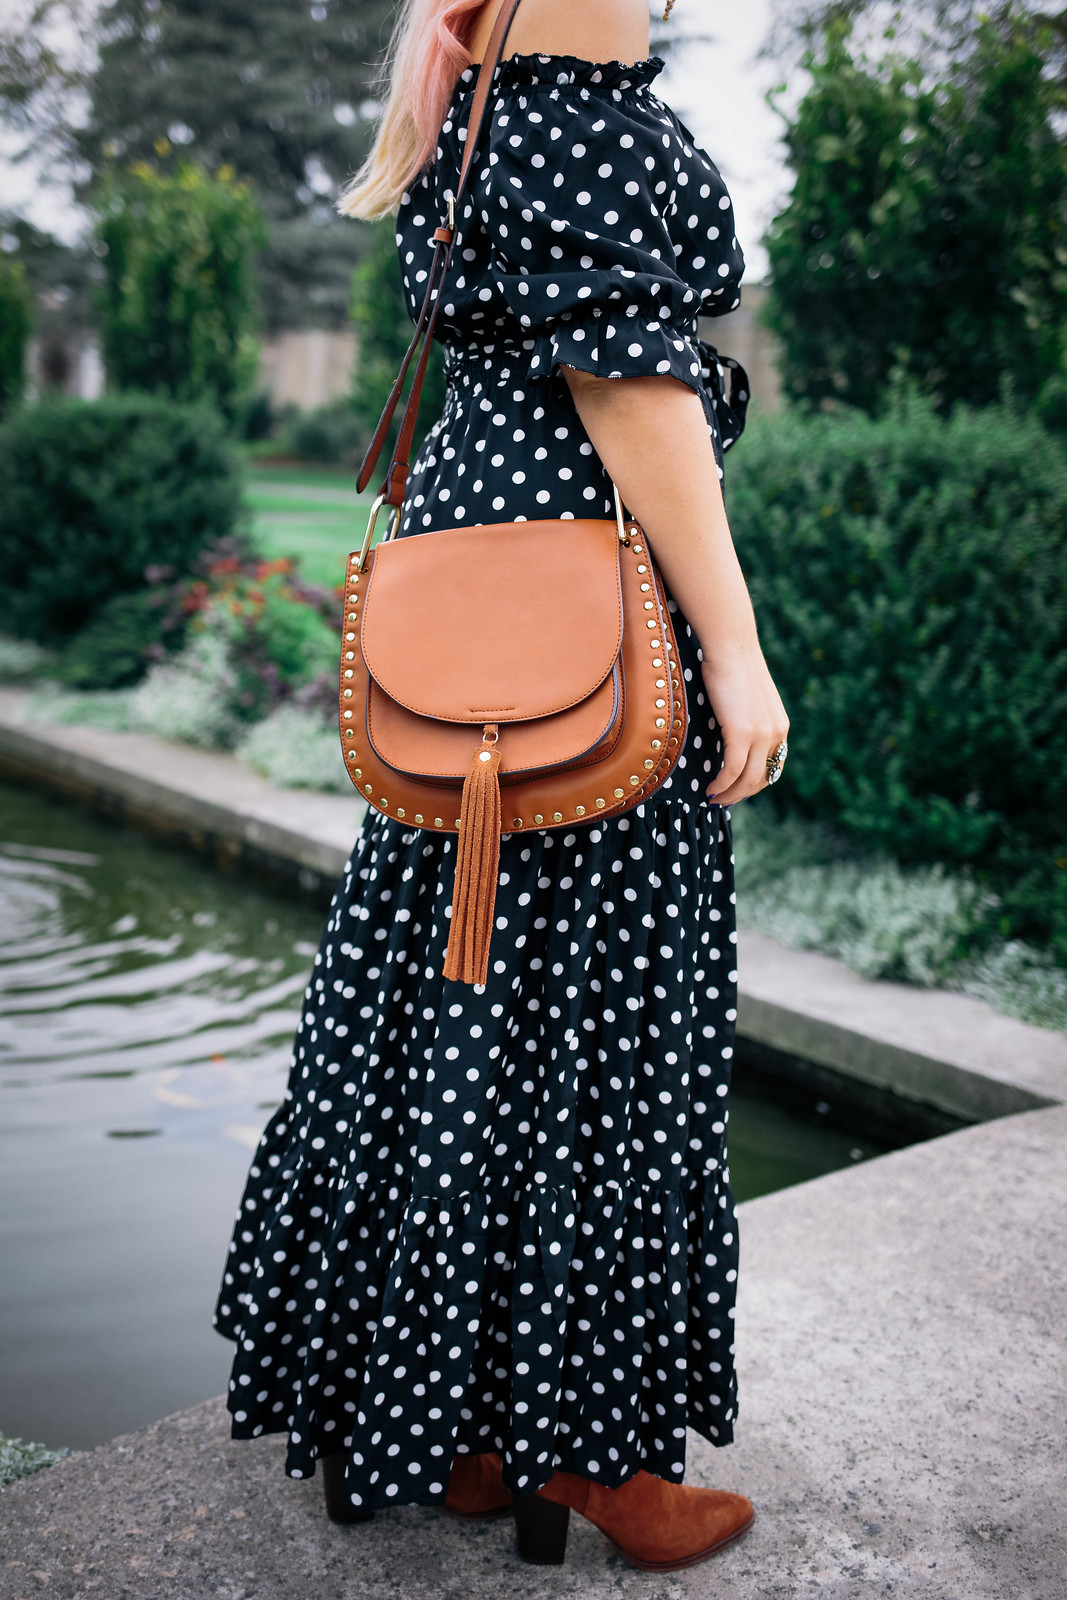 Polka Dot Maxi Dress Brown Studded Tassel Crossbody Bag Cinnamon Sam Edelman Booties